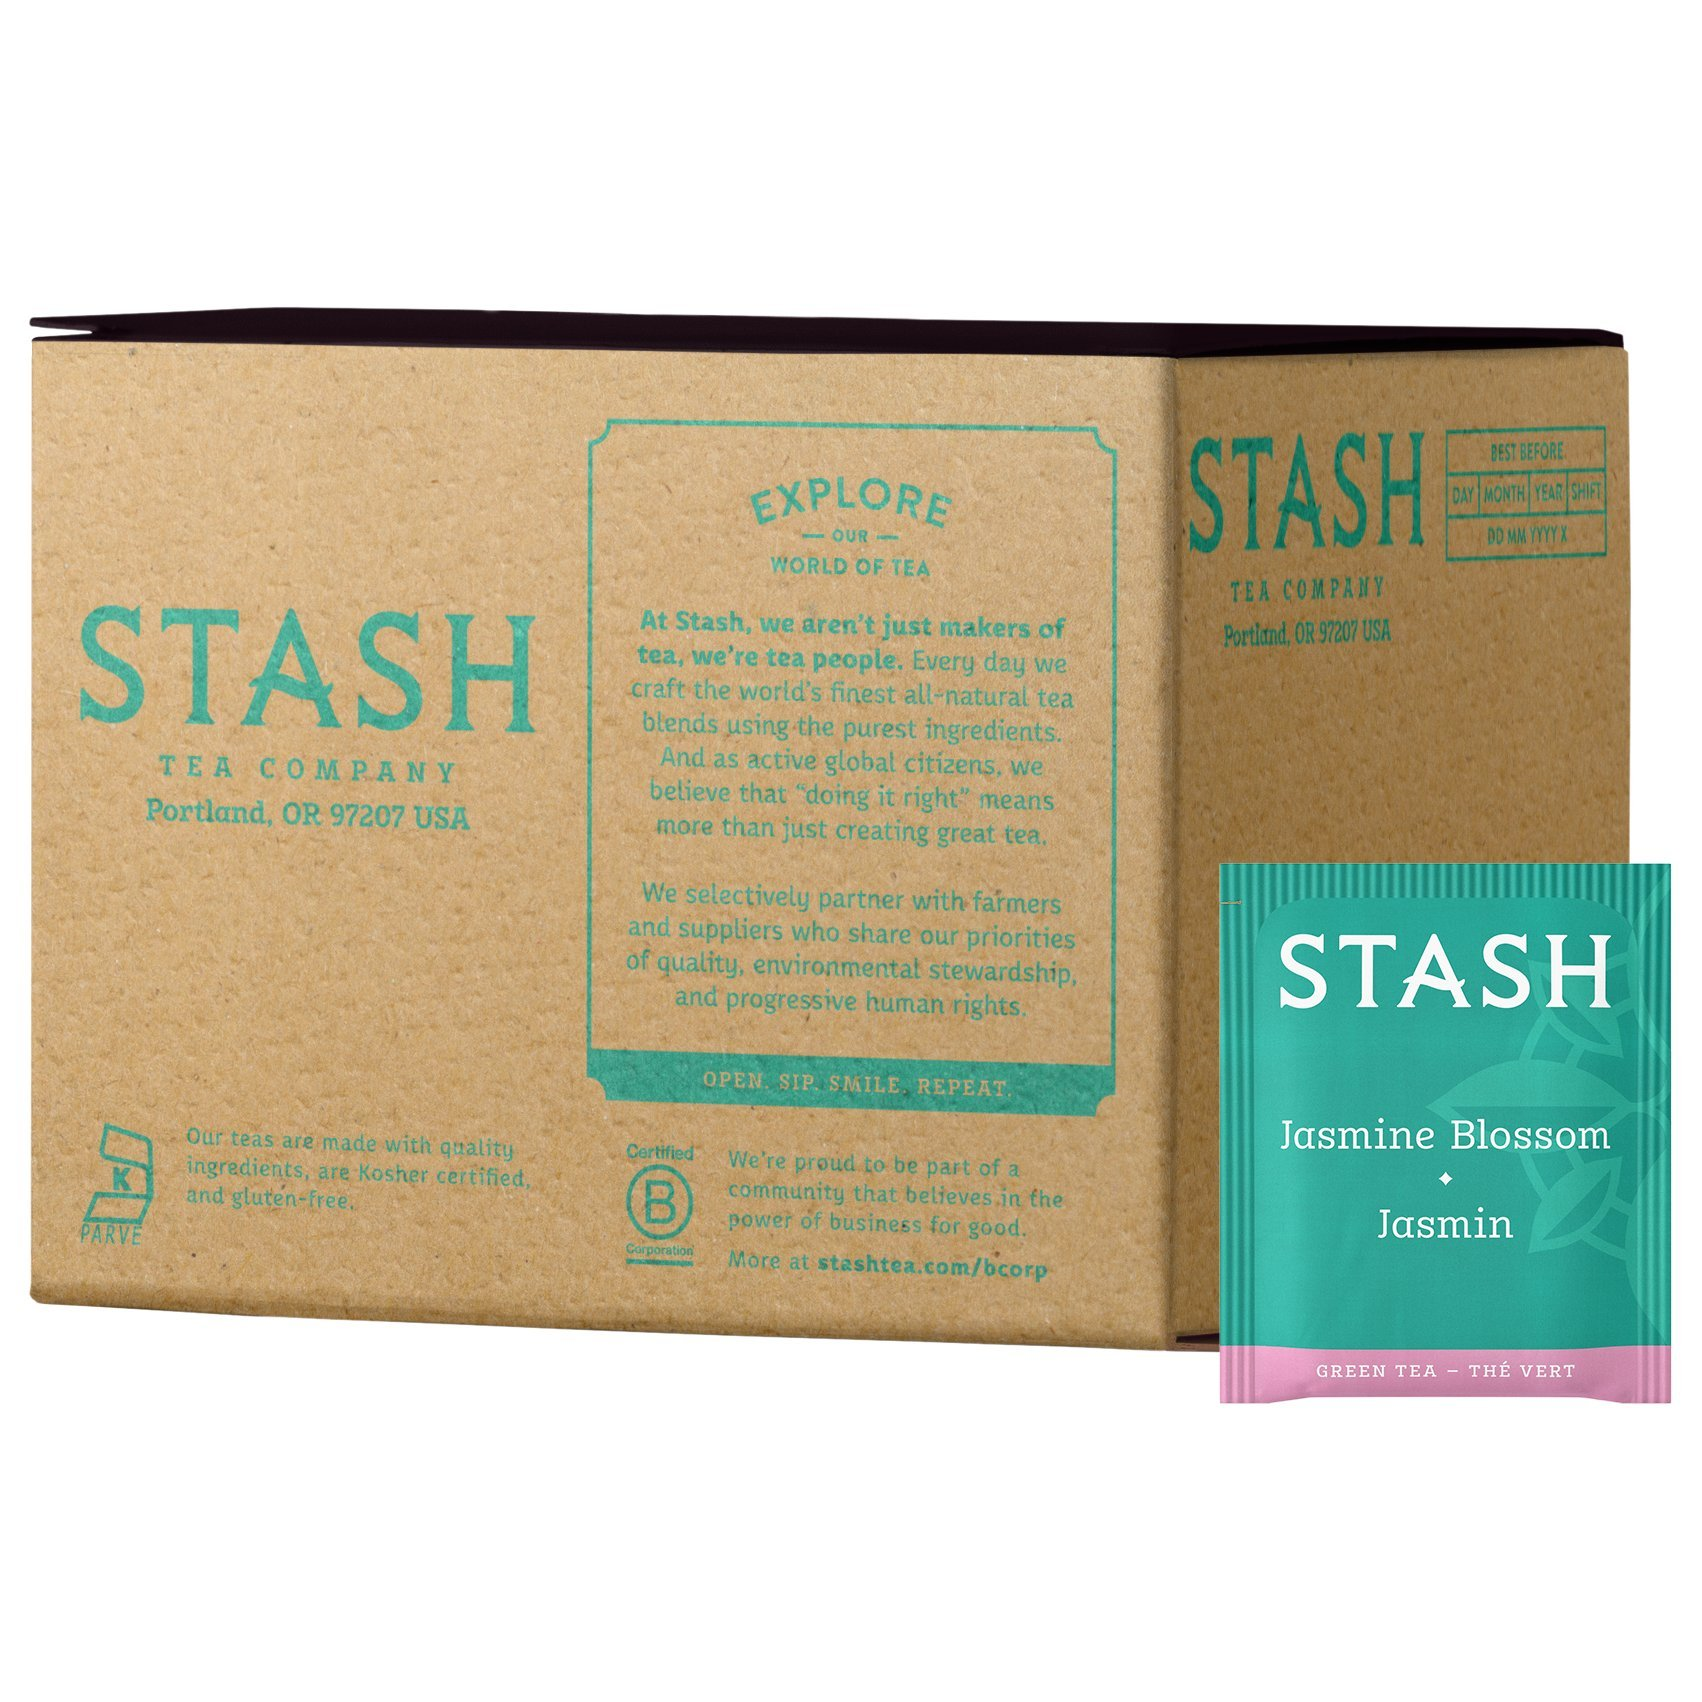 Stash Tea Jasmine Blossom Green Tea, 100 Count Box of Tea Bags in Foil (packaging may vary)